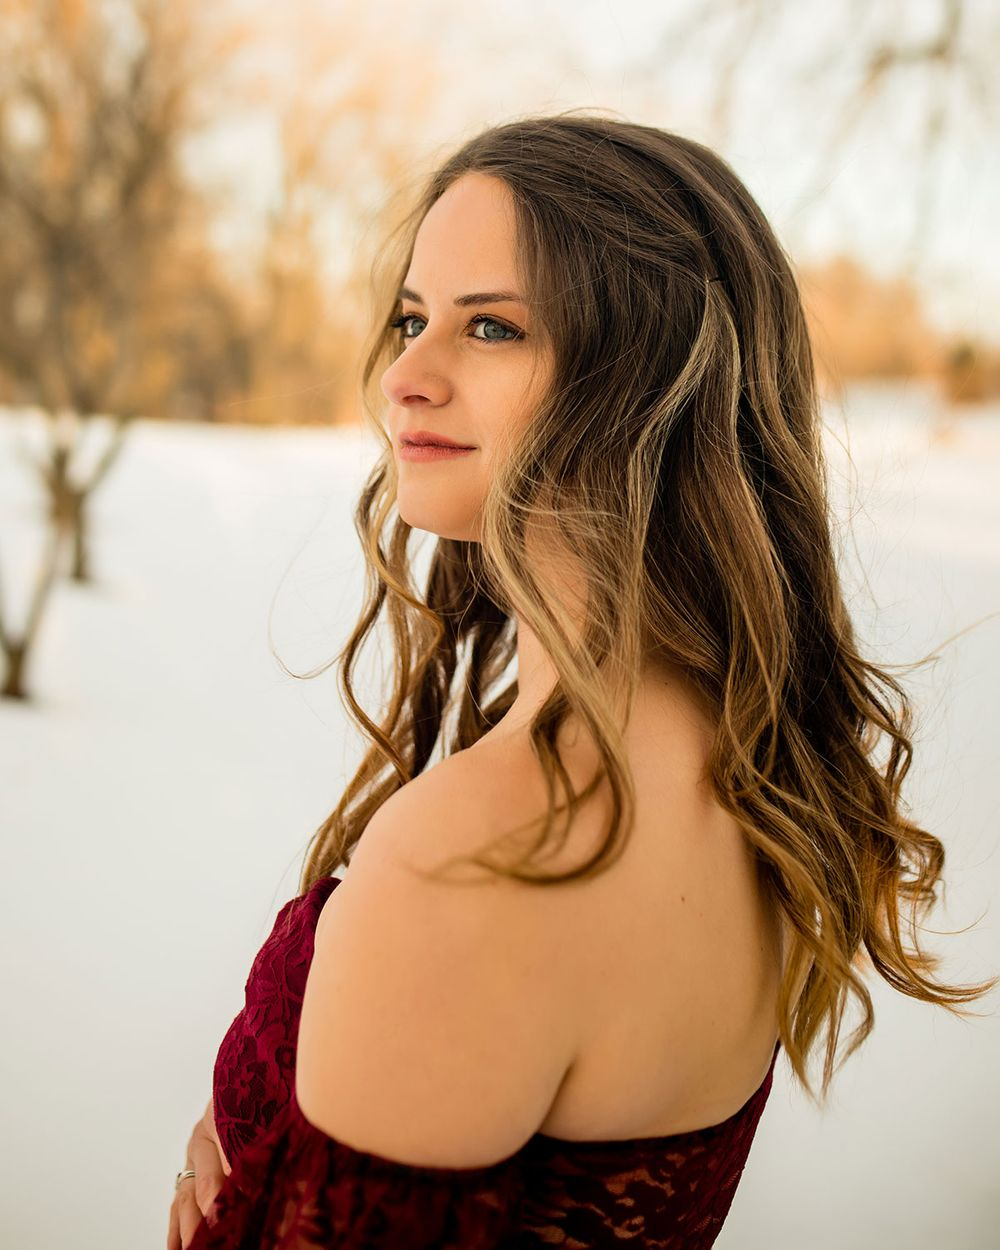 Snowy Winter Maternity Photo Session in Omaha, NE - BrightSide Photography